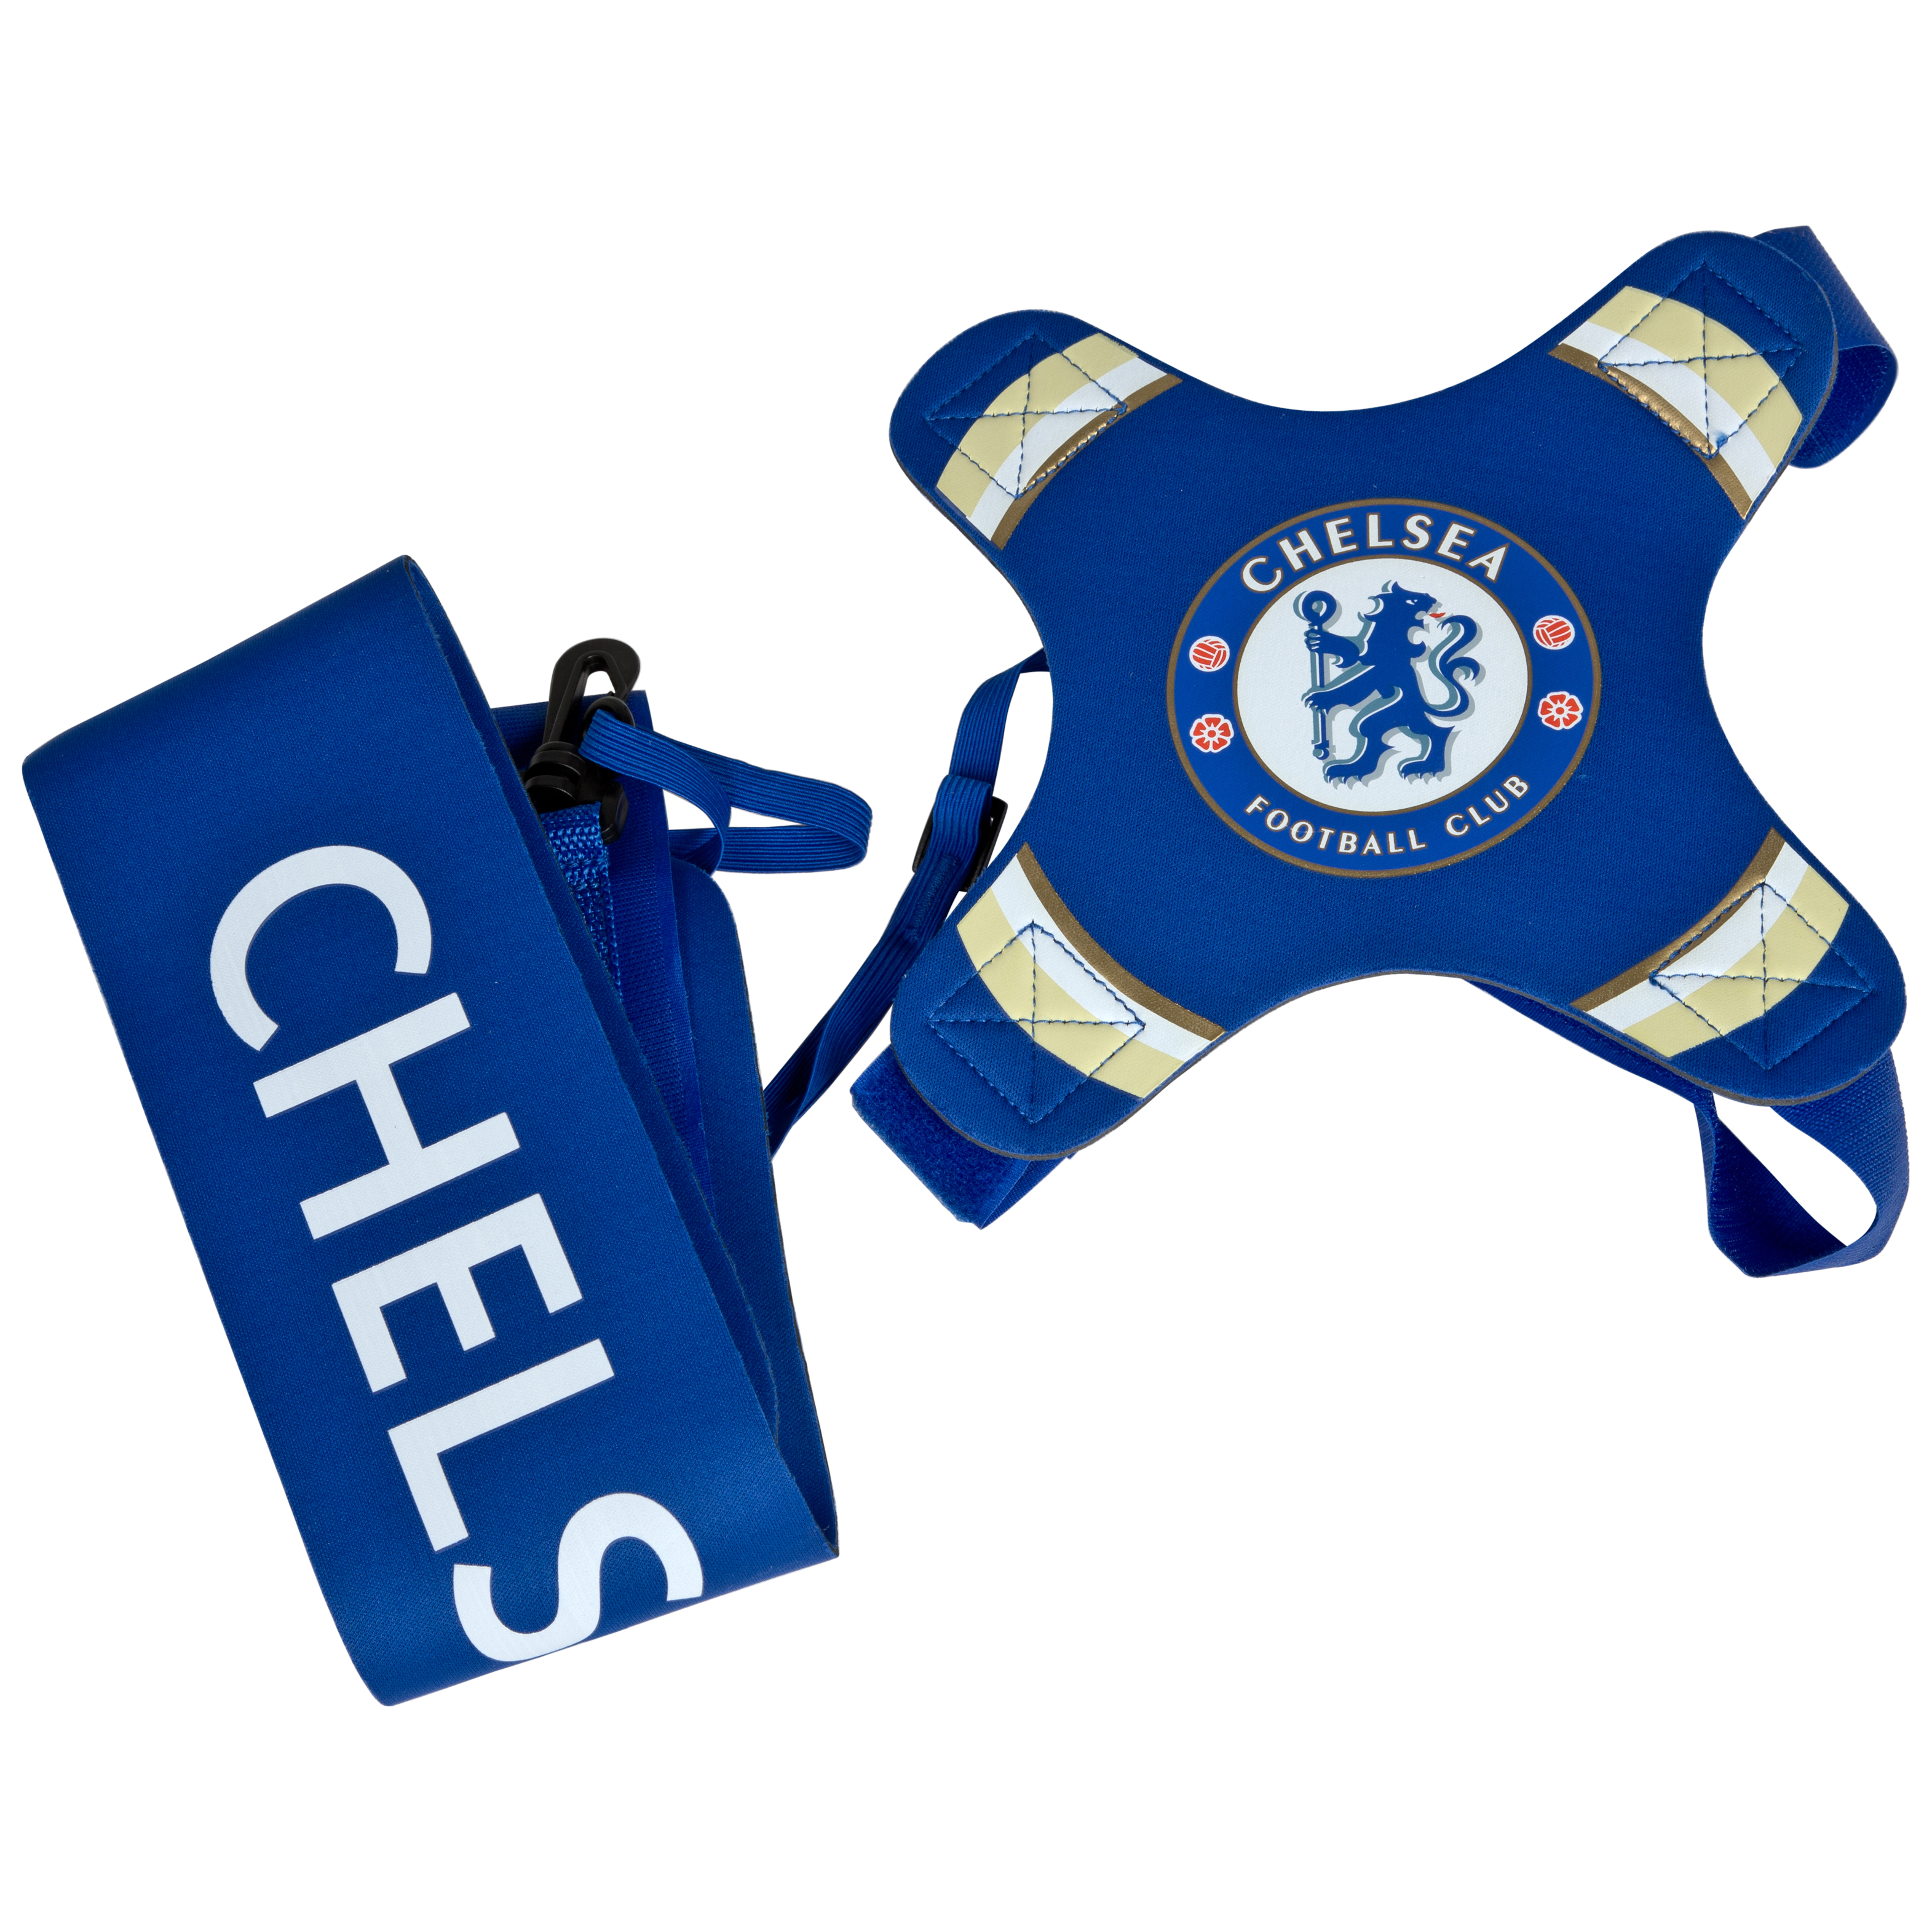 Chelsea Pro Kick Football Trainer